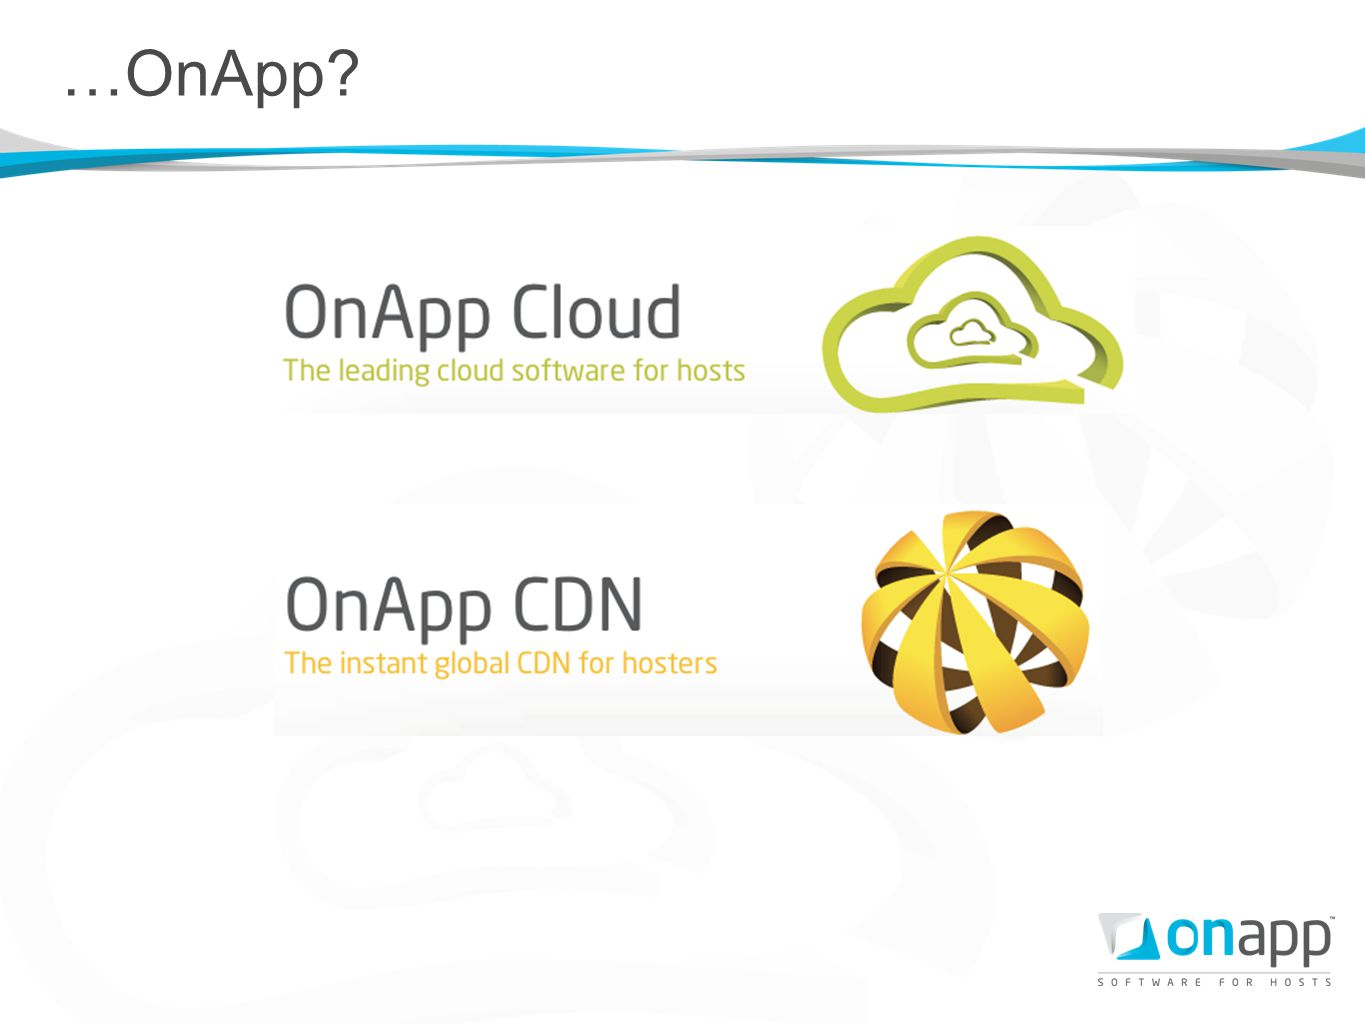 About OnApp Software for hosts OnApp launched July 1 st 2010 300+ clients 80+ employees in US, EU, APAC 2+ clouds per day 400+ clouds deployed